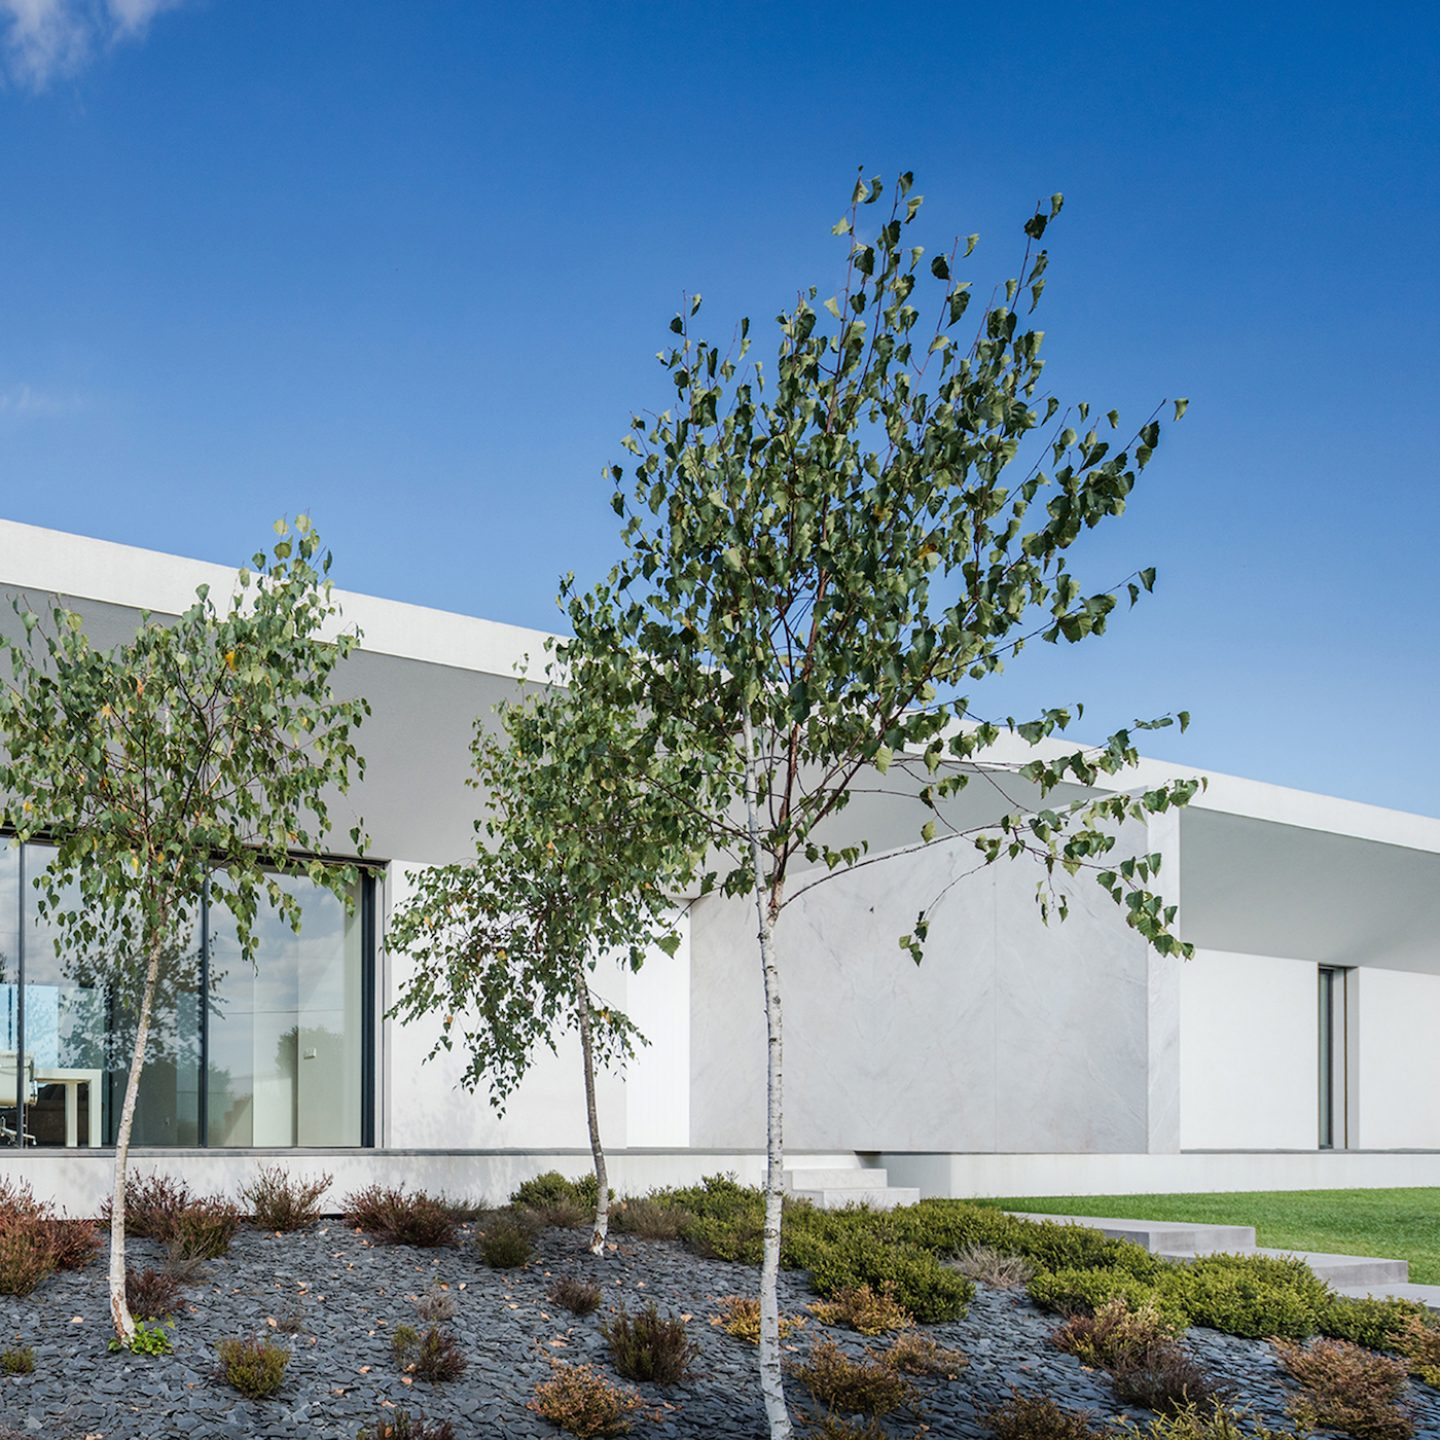 Vila do Conde House - Raulino Arquitecto (01)